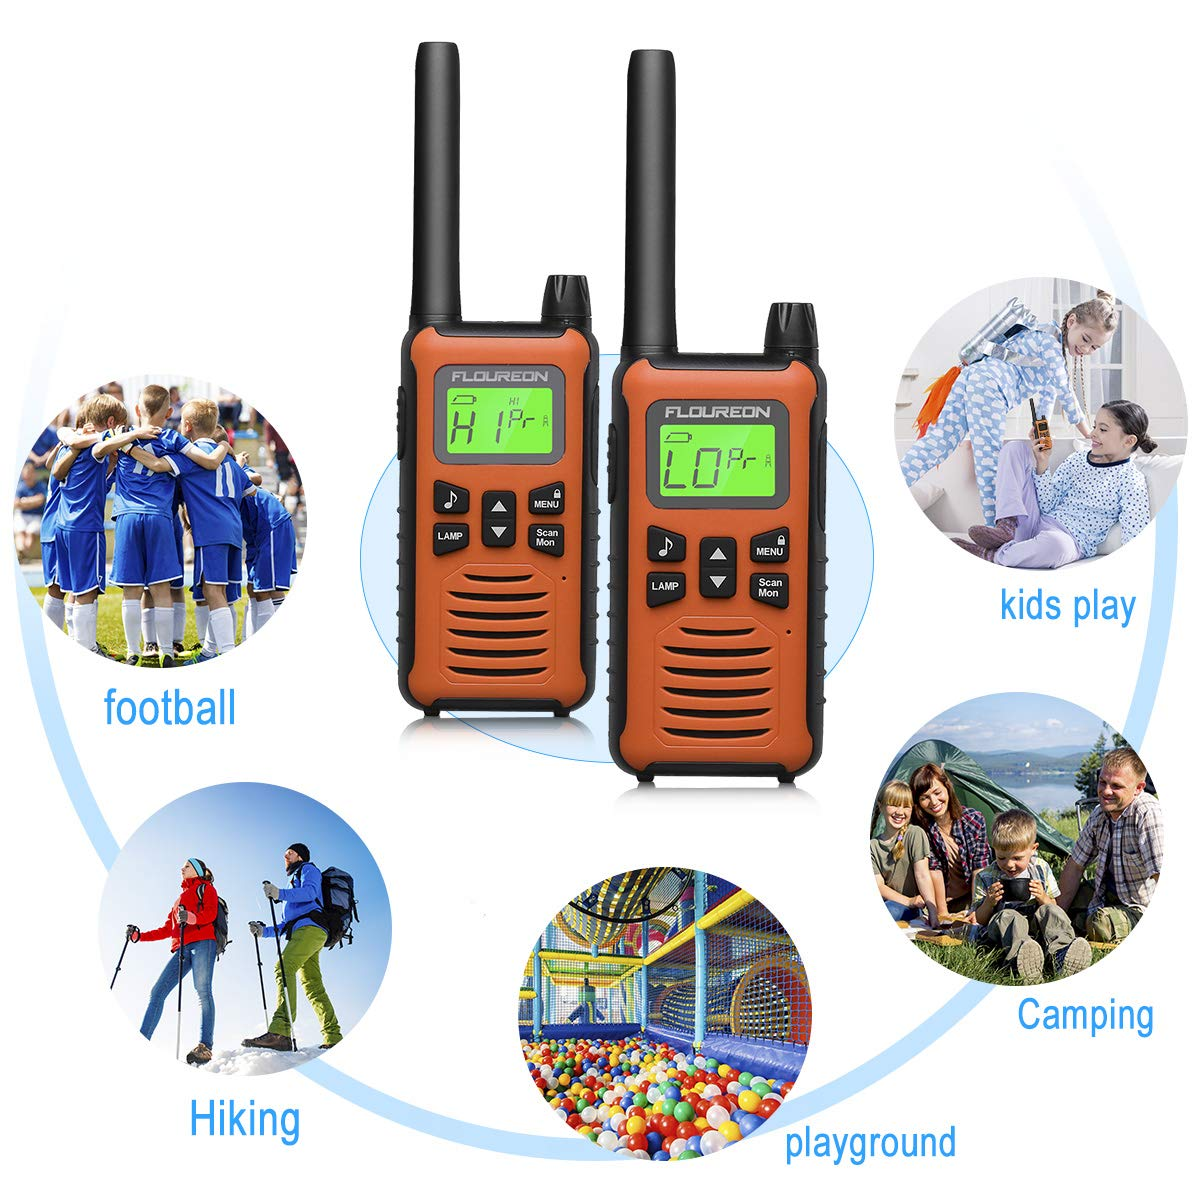 Black MAX 5000M USB Cable Charging Walkie Talkies for Outdoor Adventures Camping Hiking floureon 4 Pack Walkie Talkies for Kids Long Range Two Way Radio 22 Channel 3000M